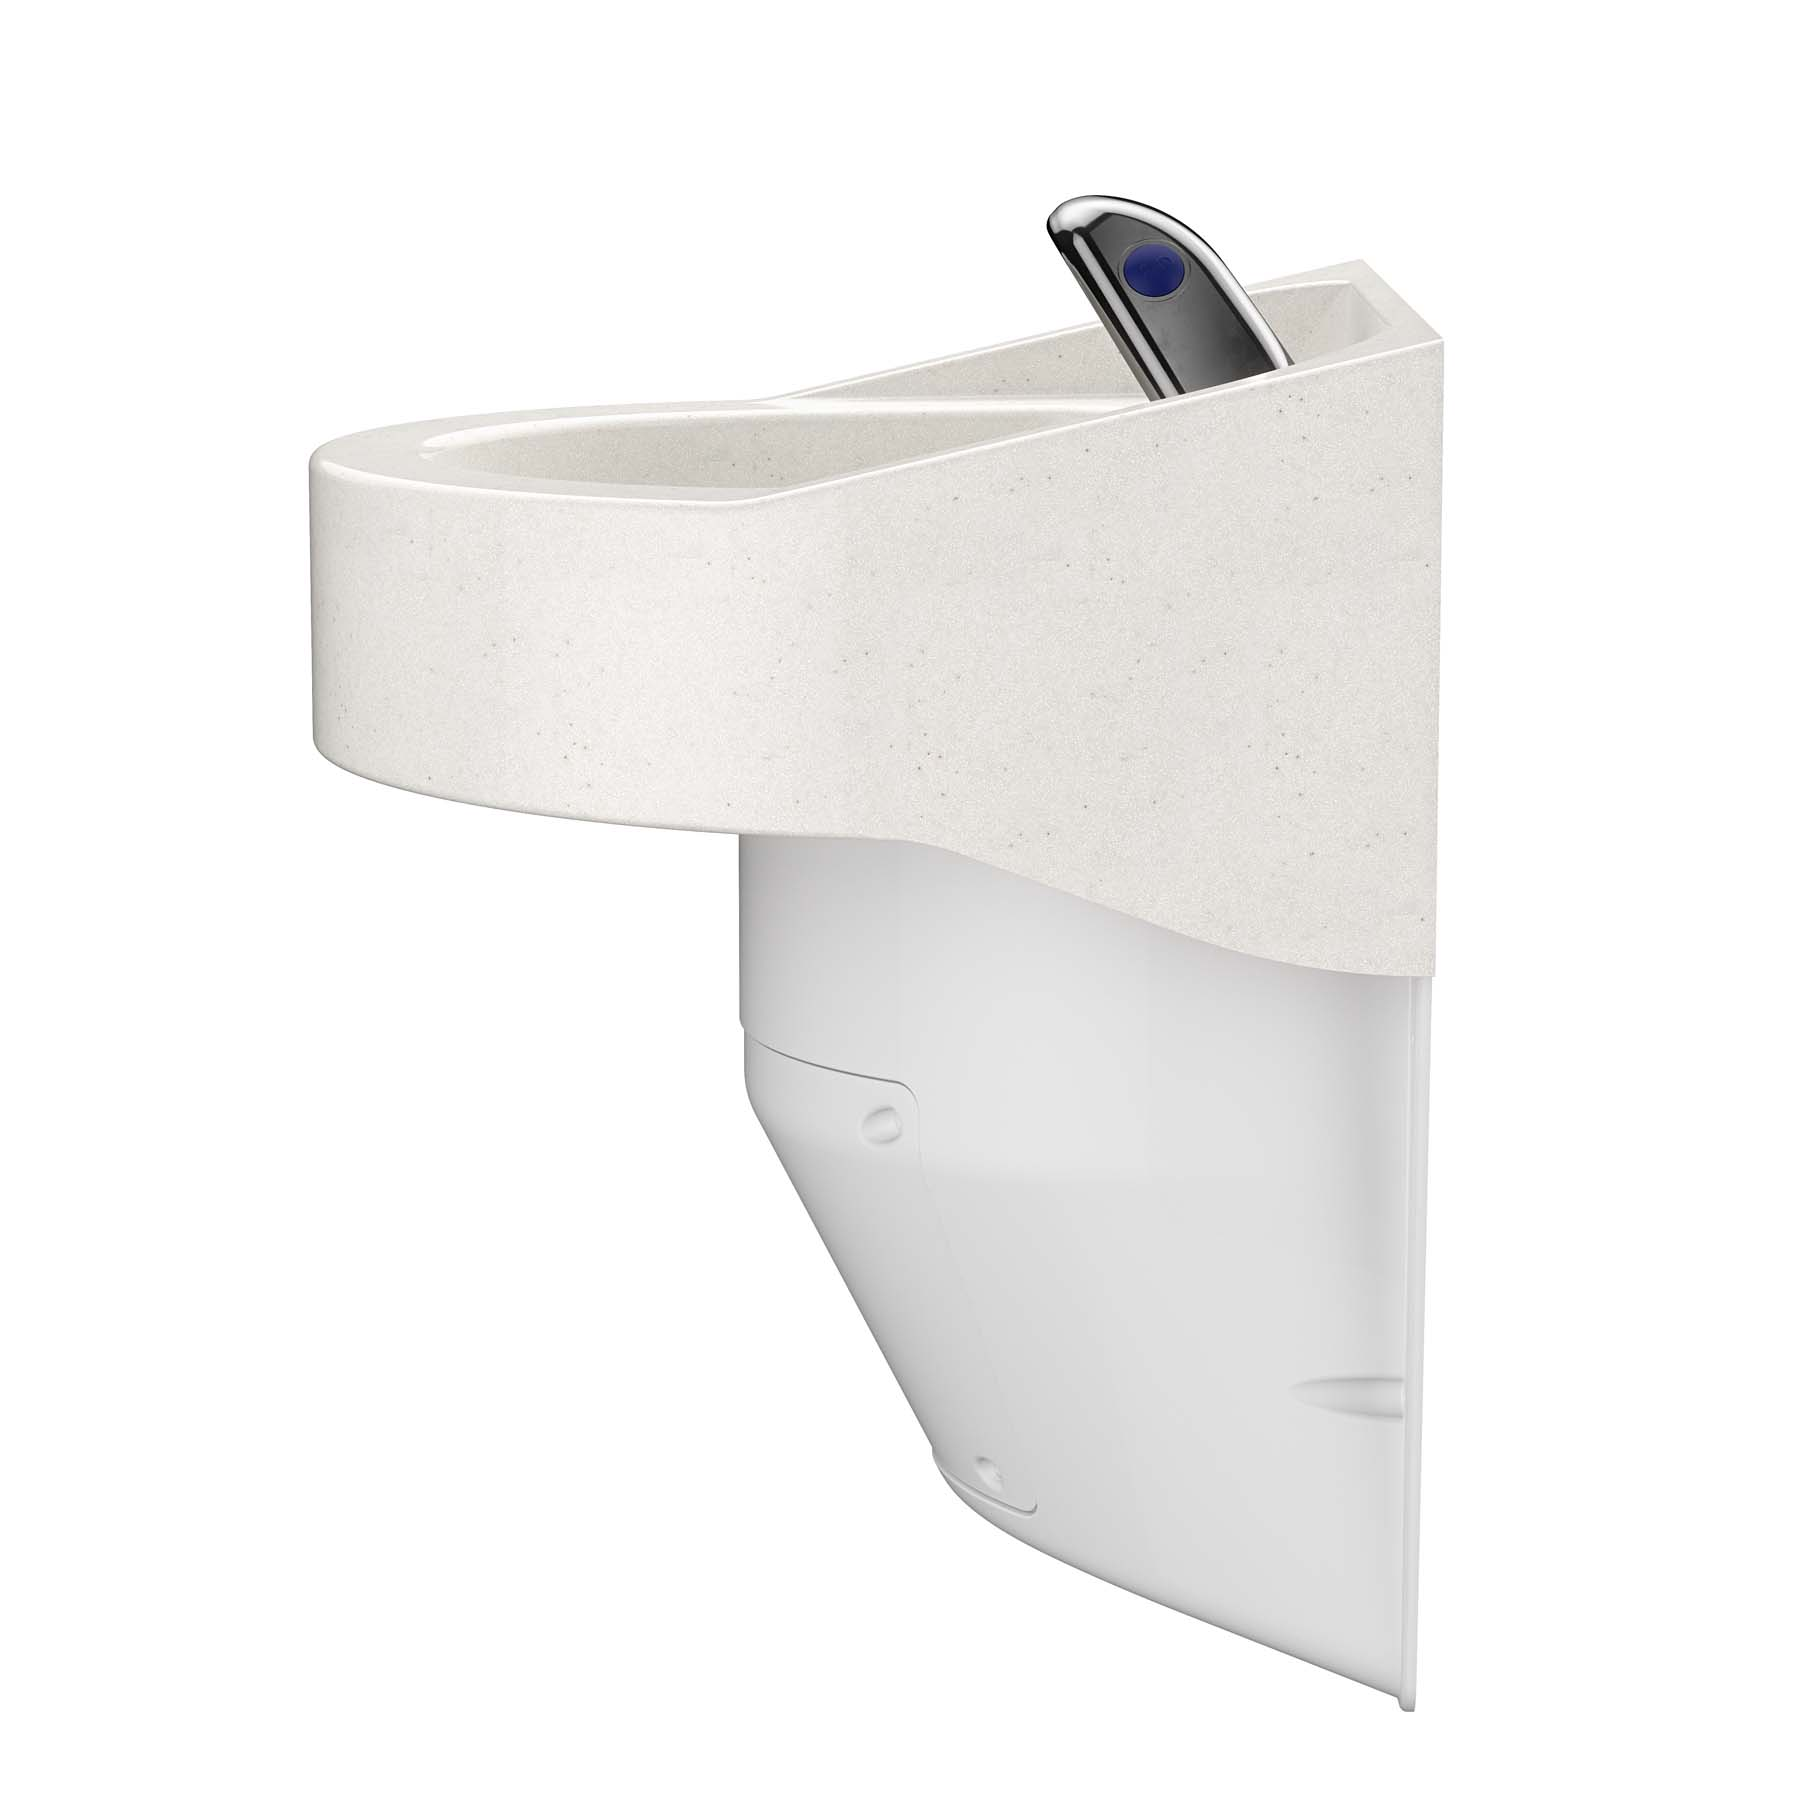 Ligature Resistant Sink and Trap Cover - Close Side View